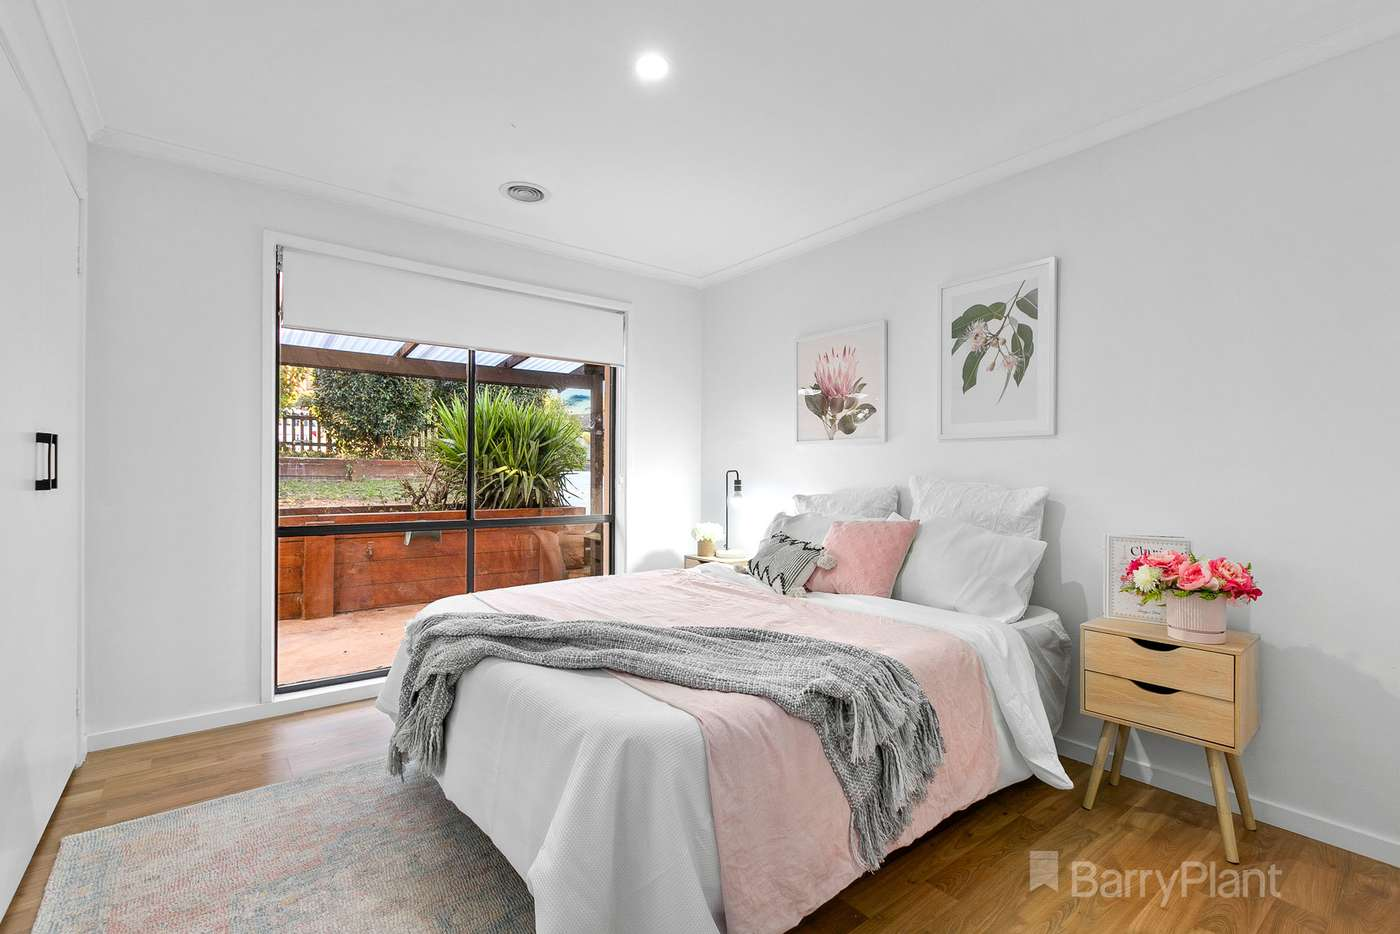 Fifth view of Homely house listing, 91 Darling Way, Narre Warren VIC 3805